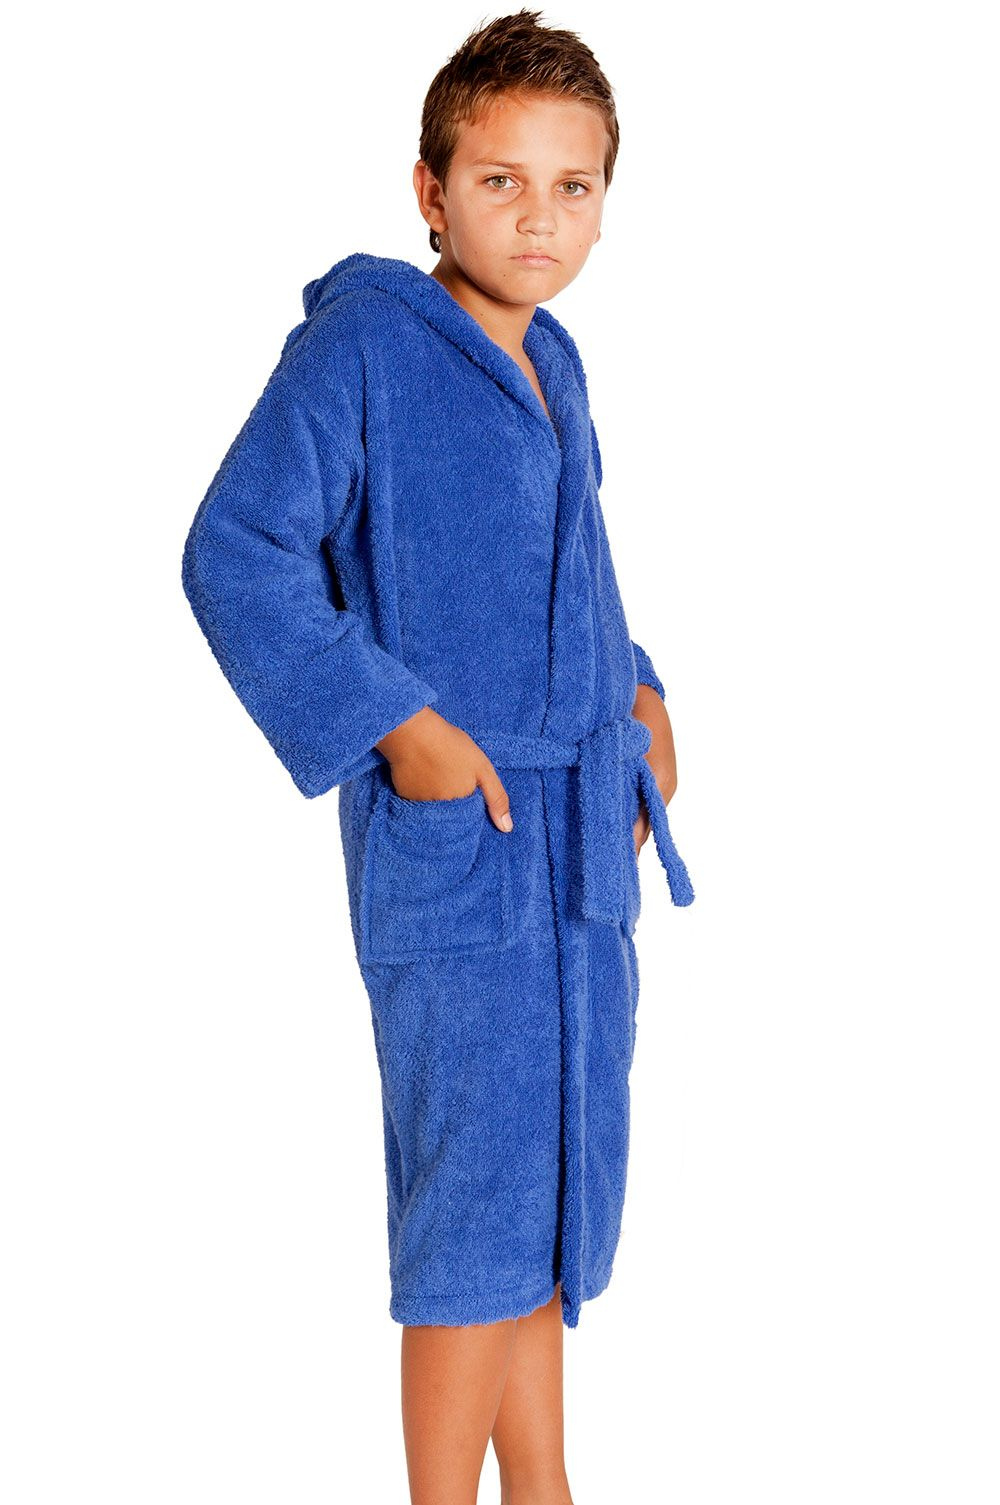 2684187fbe Kids Bathrobes    Royal Blue Hooded Terry Kid s Bathrobe - Wholesale  bathrobes